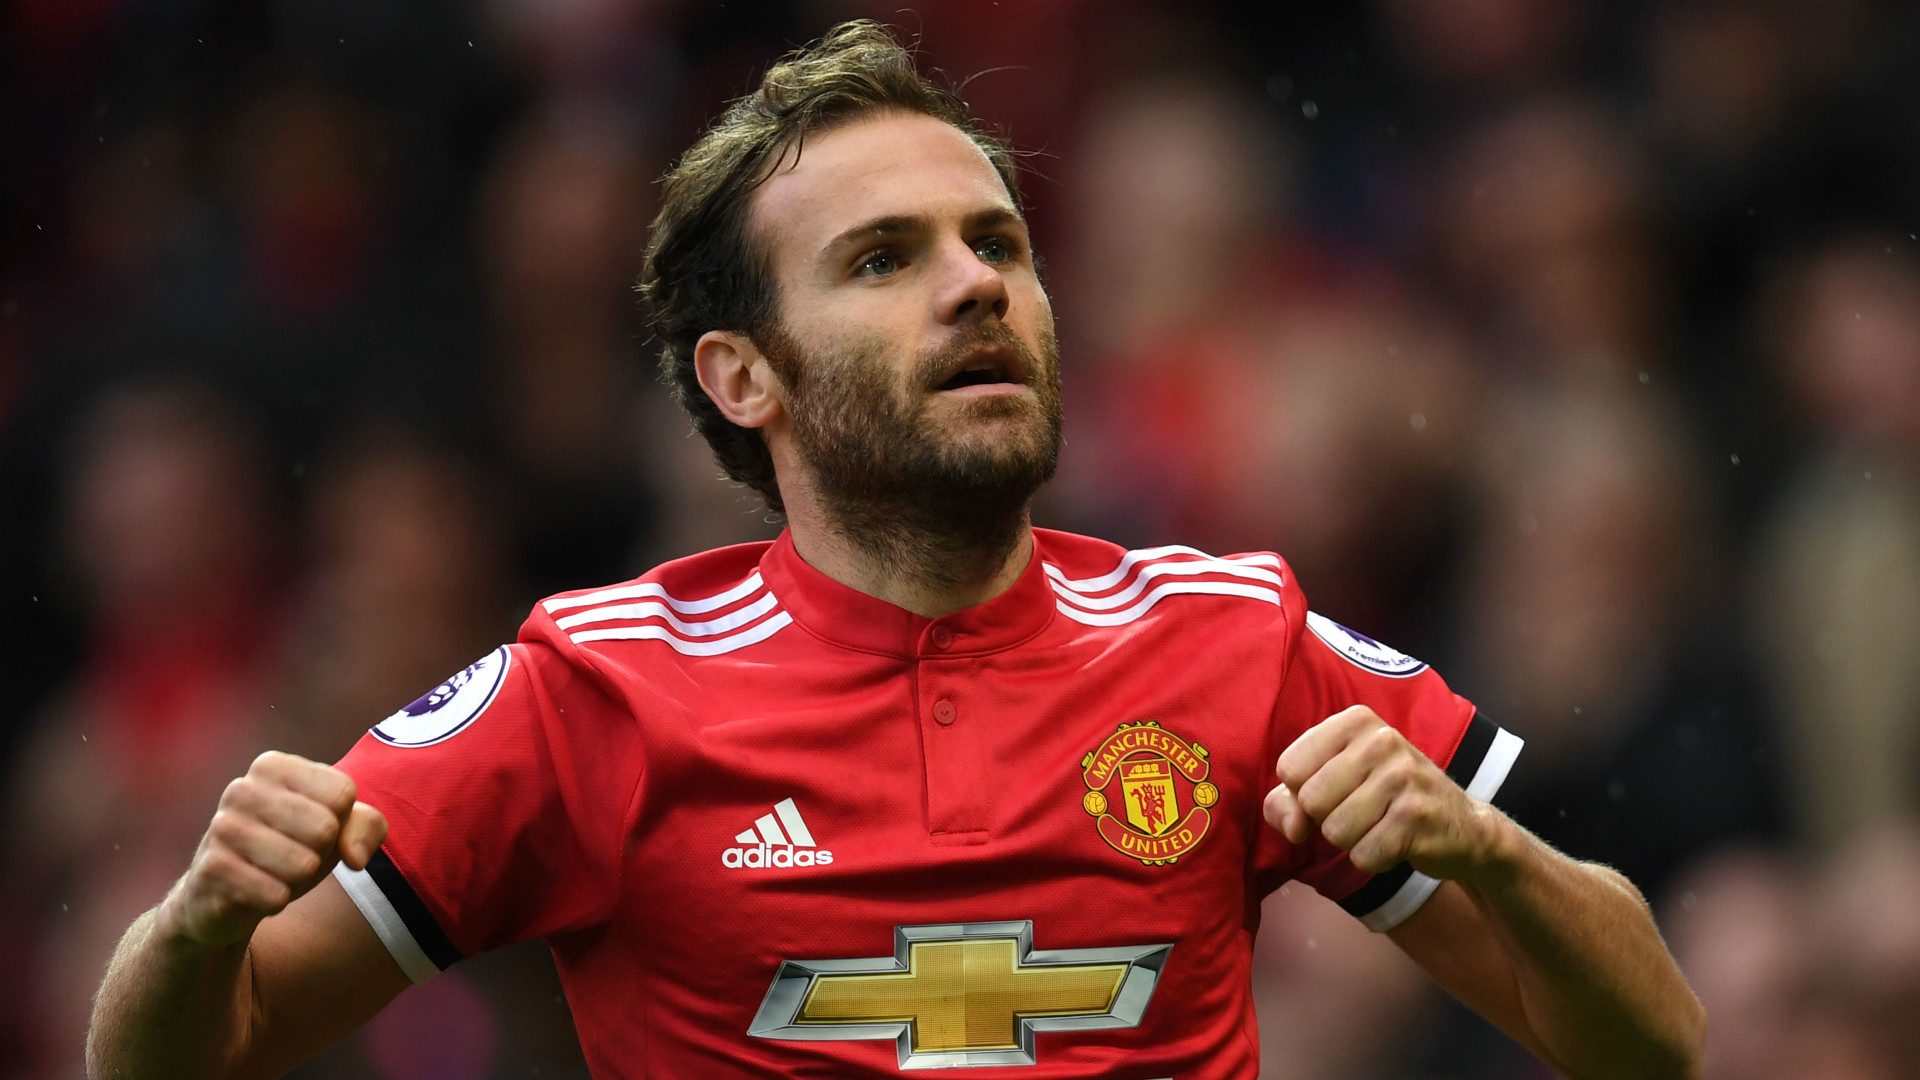 What Is Common Goal? Juan Mata's Charitable Initiative